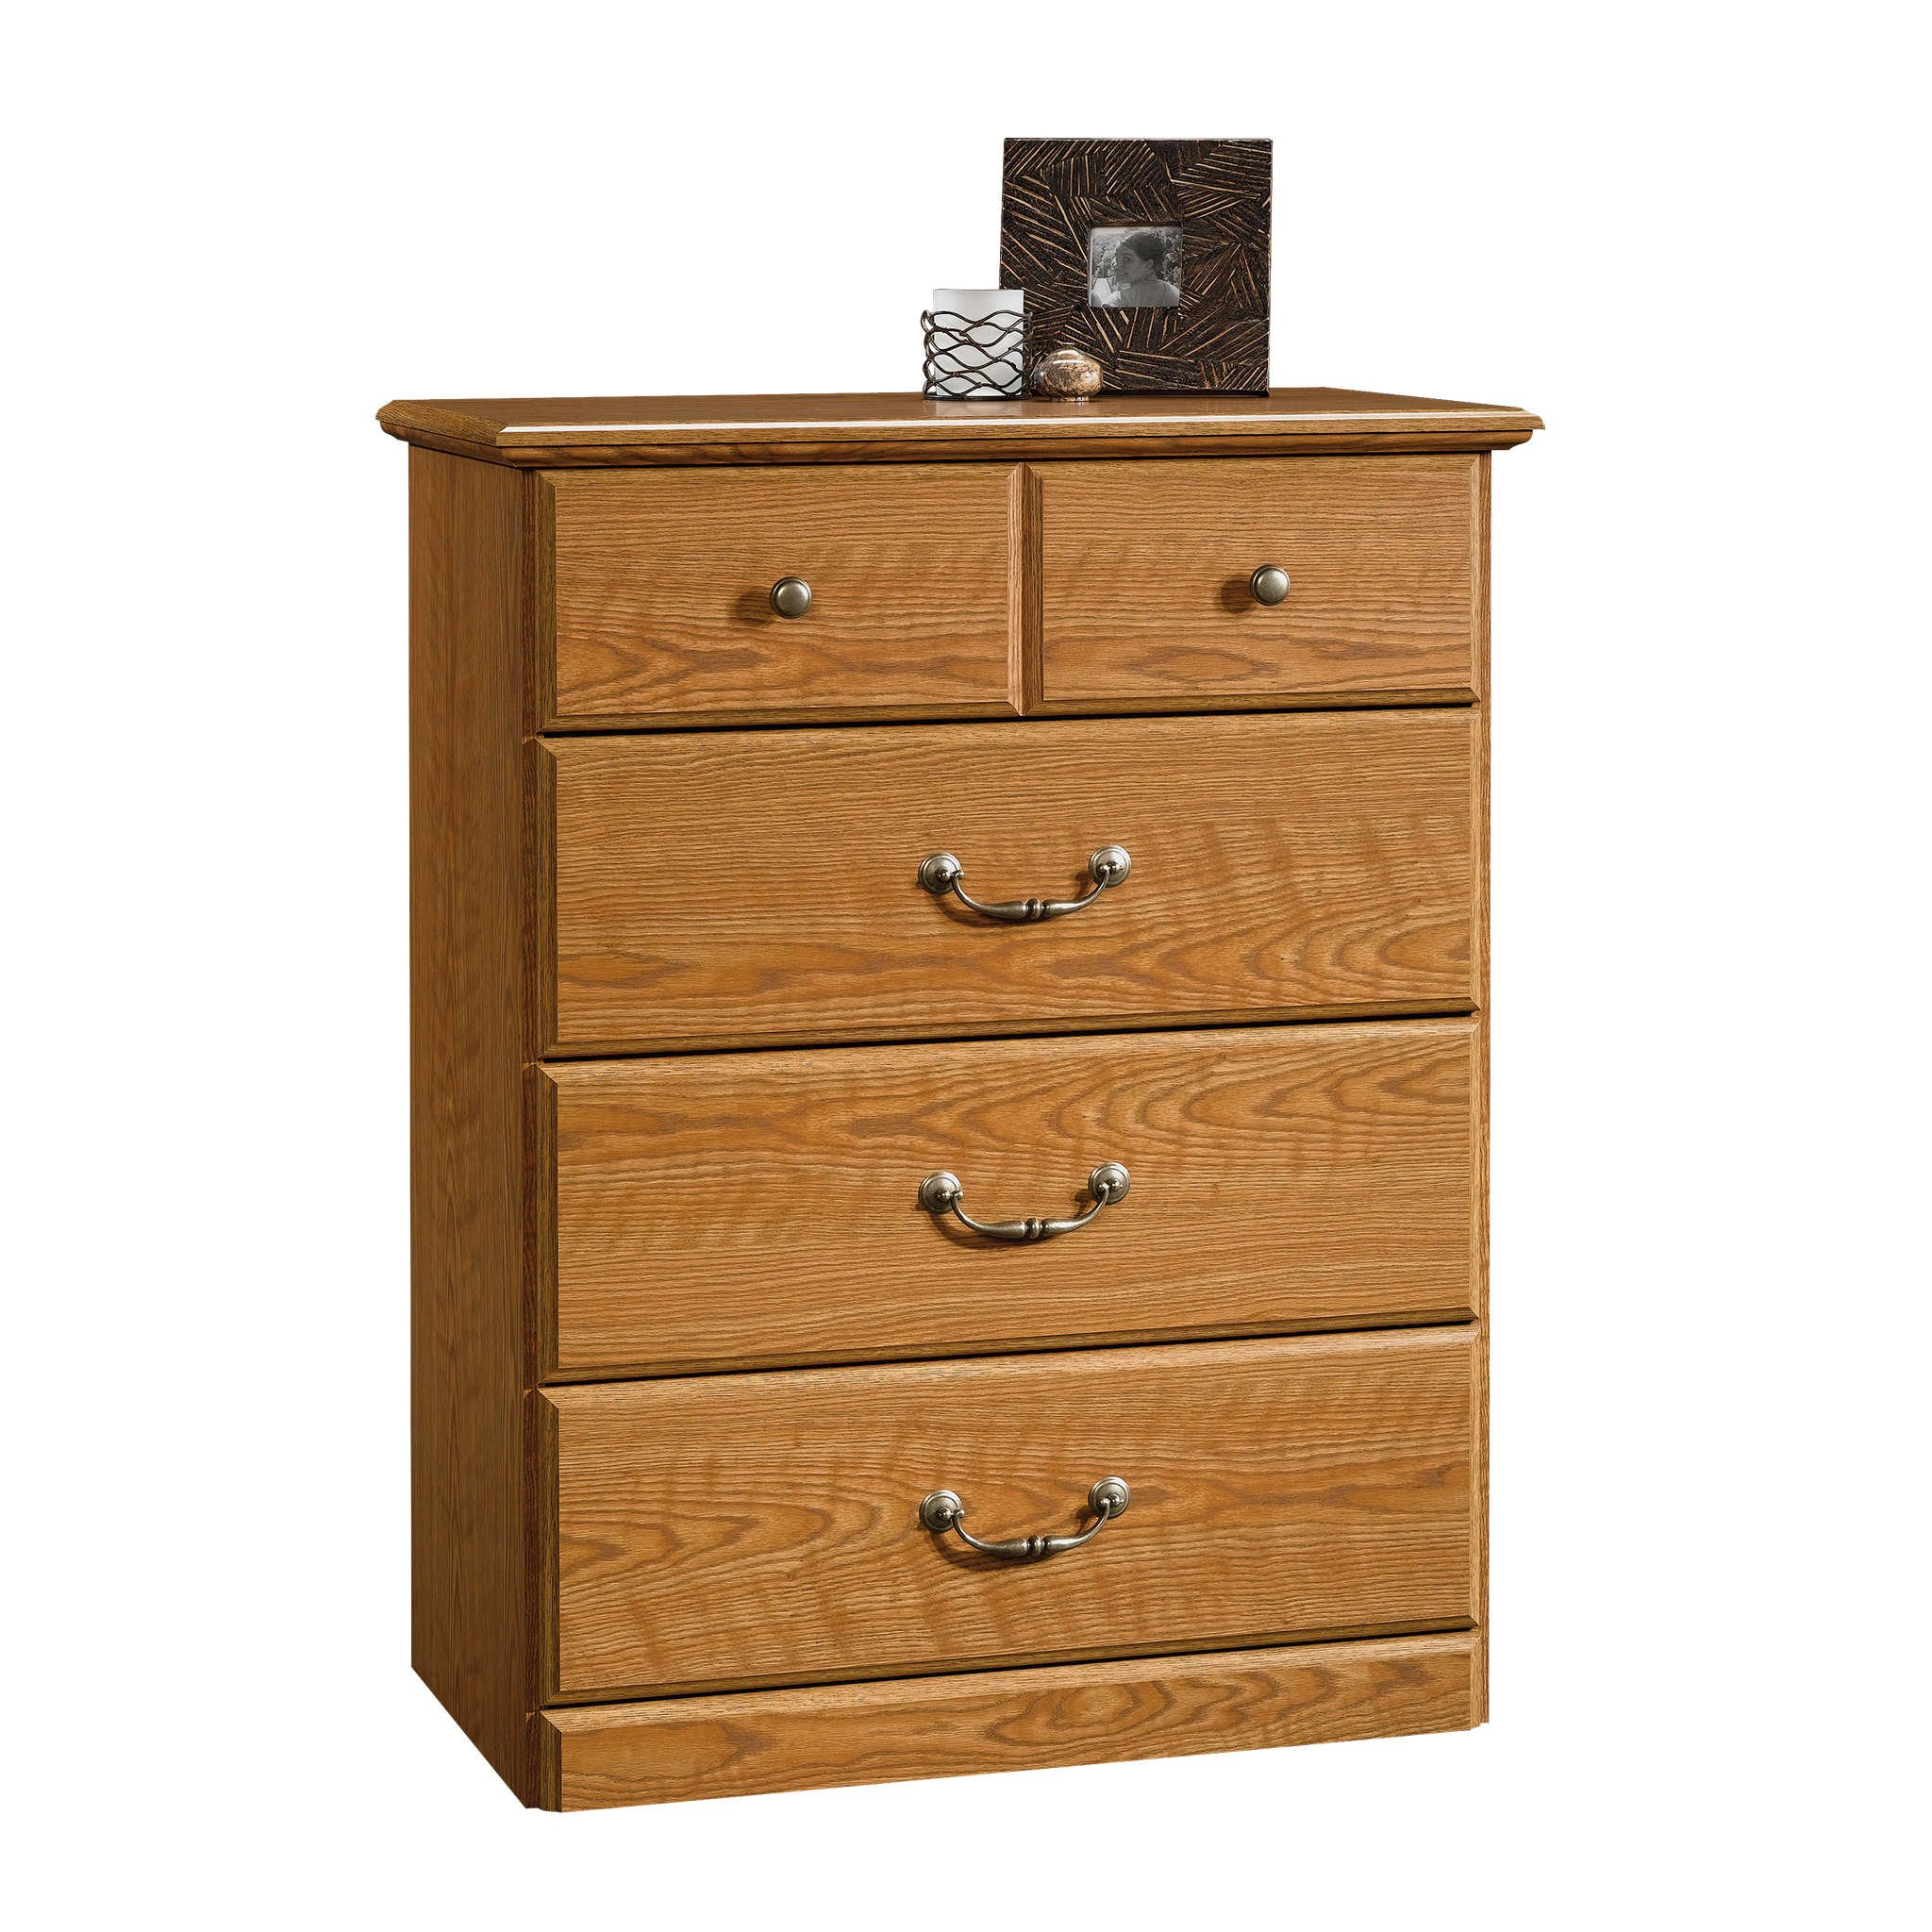 Sauder 401291 Orchard Hills 4-Drawer Chest, L: 30.95'' x W: 16.81'' x H: 39.80'', Carolina Oak finish